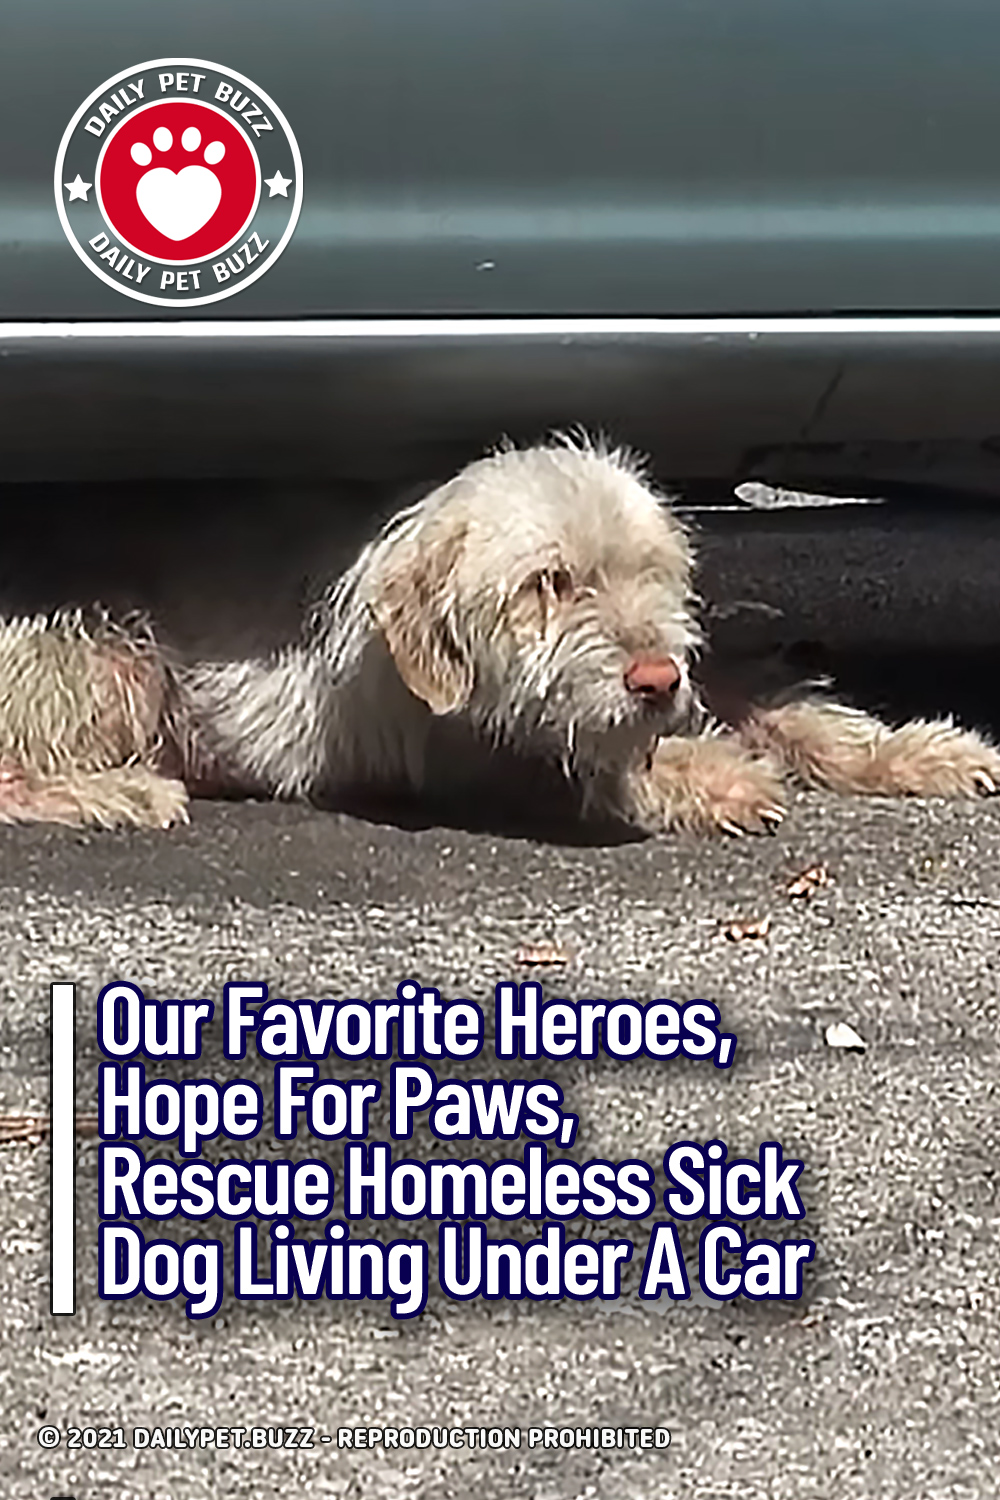 Our Favorite Heroes, Hope For Paws, Rescue Homeless Sick Dog Living Under A Car